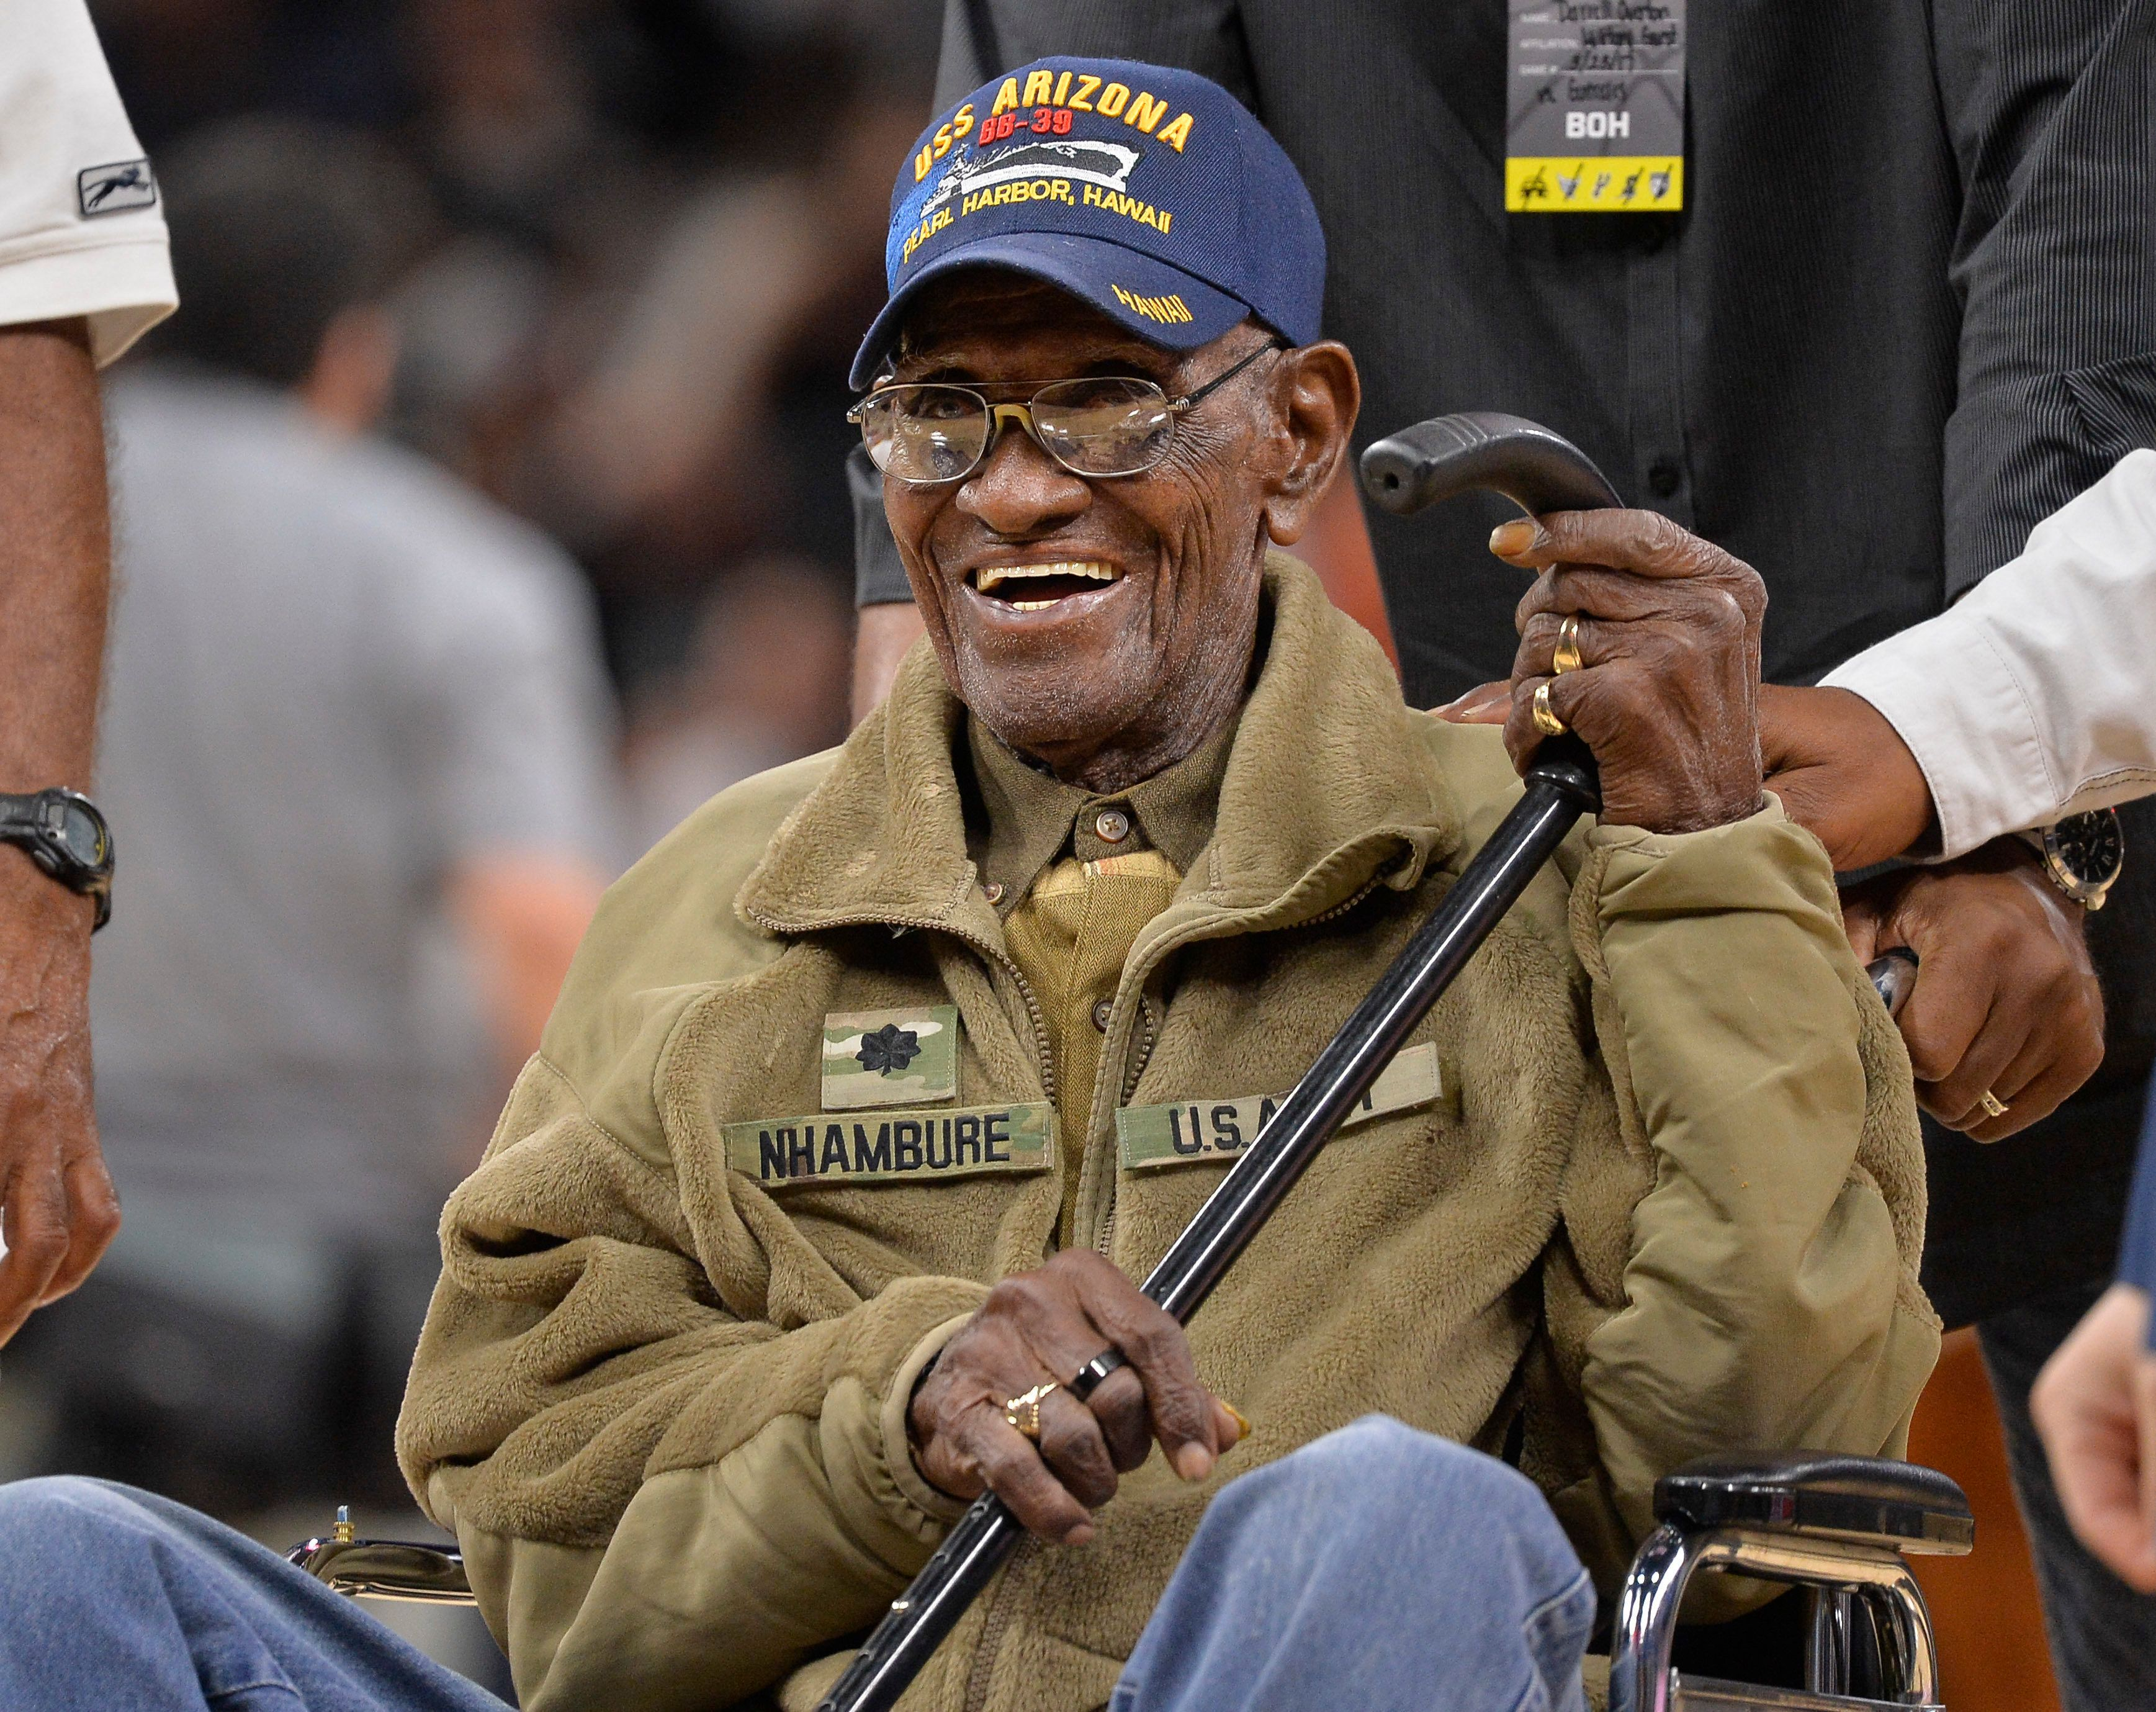 """""""Richard Overton made us proud to be Texans and proud to be Americans,"""" Texas Gov. Greg Abbott said."""